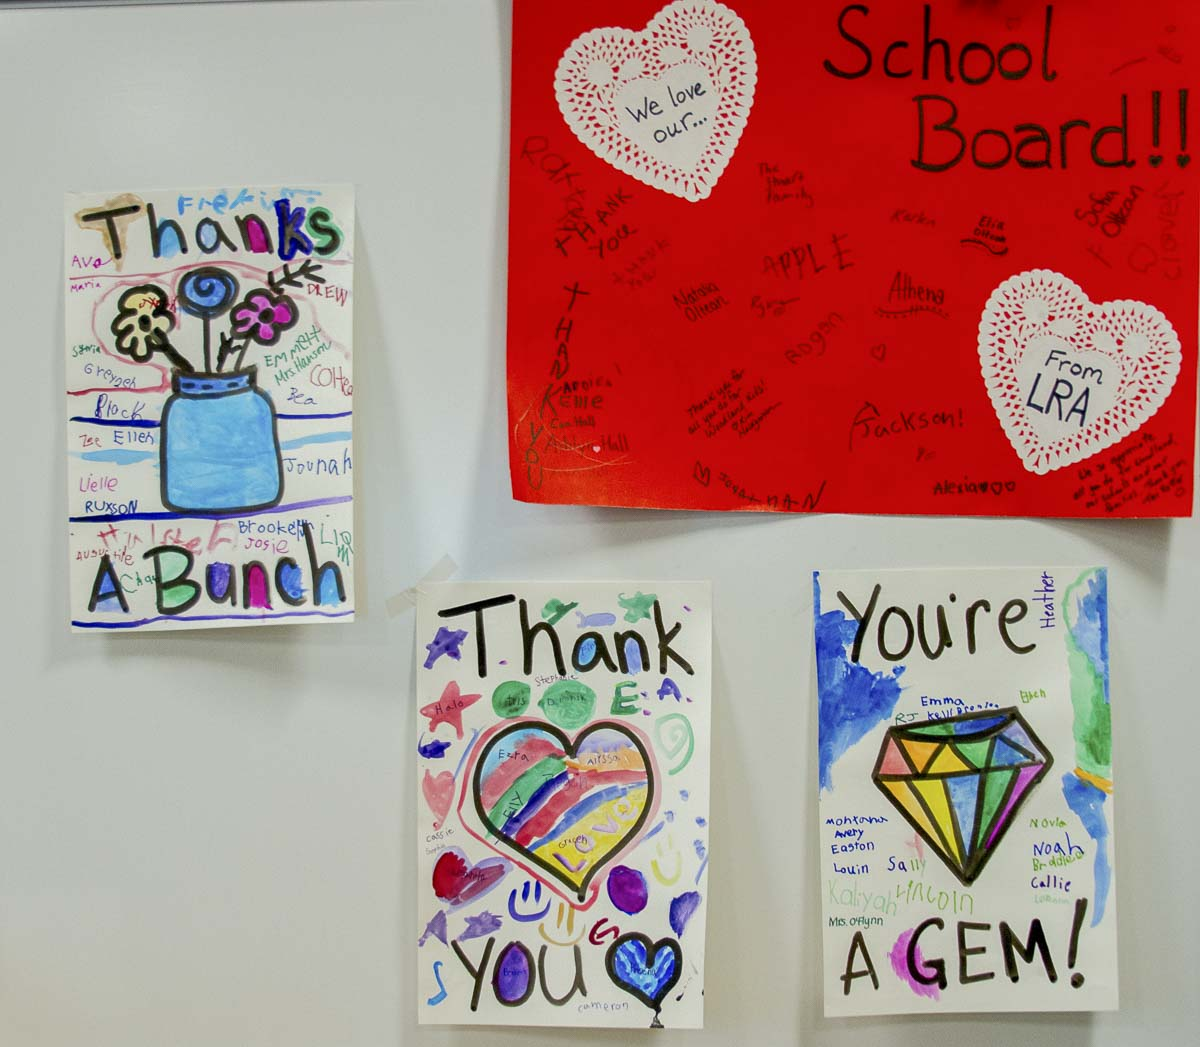 Students and staff from each Woodland school created banners to thank the board members. Photo courtesy of Woodland School District